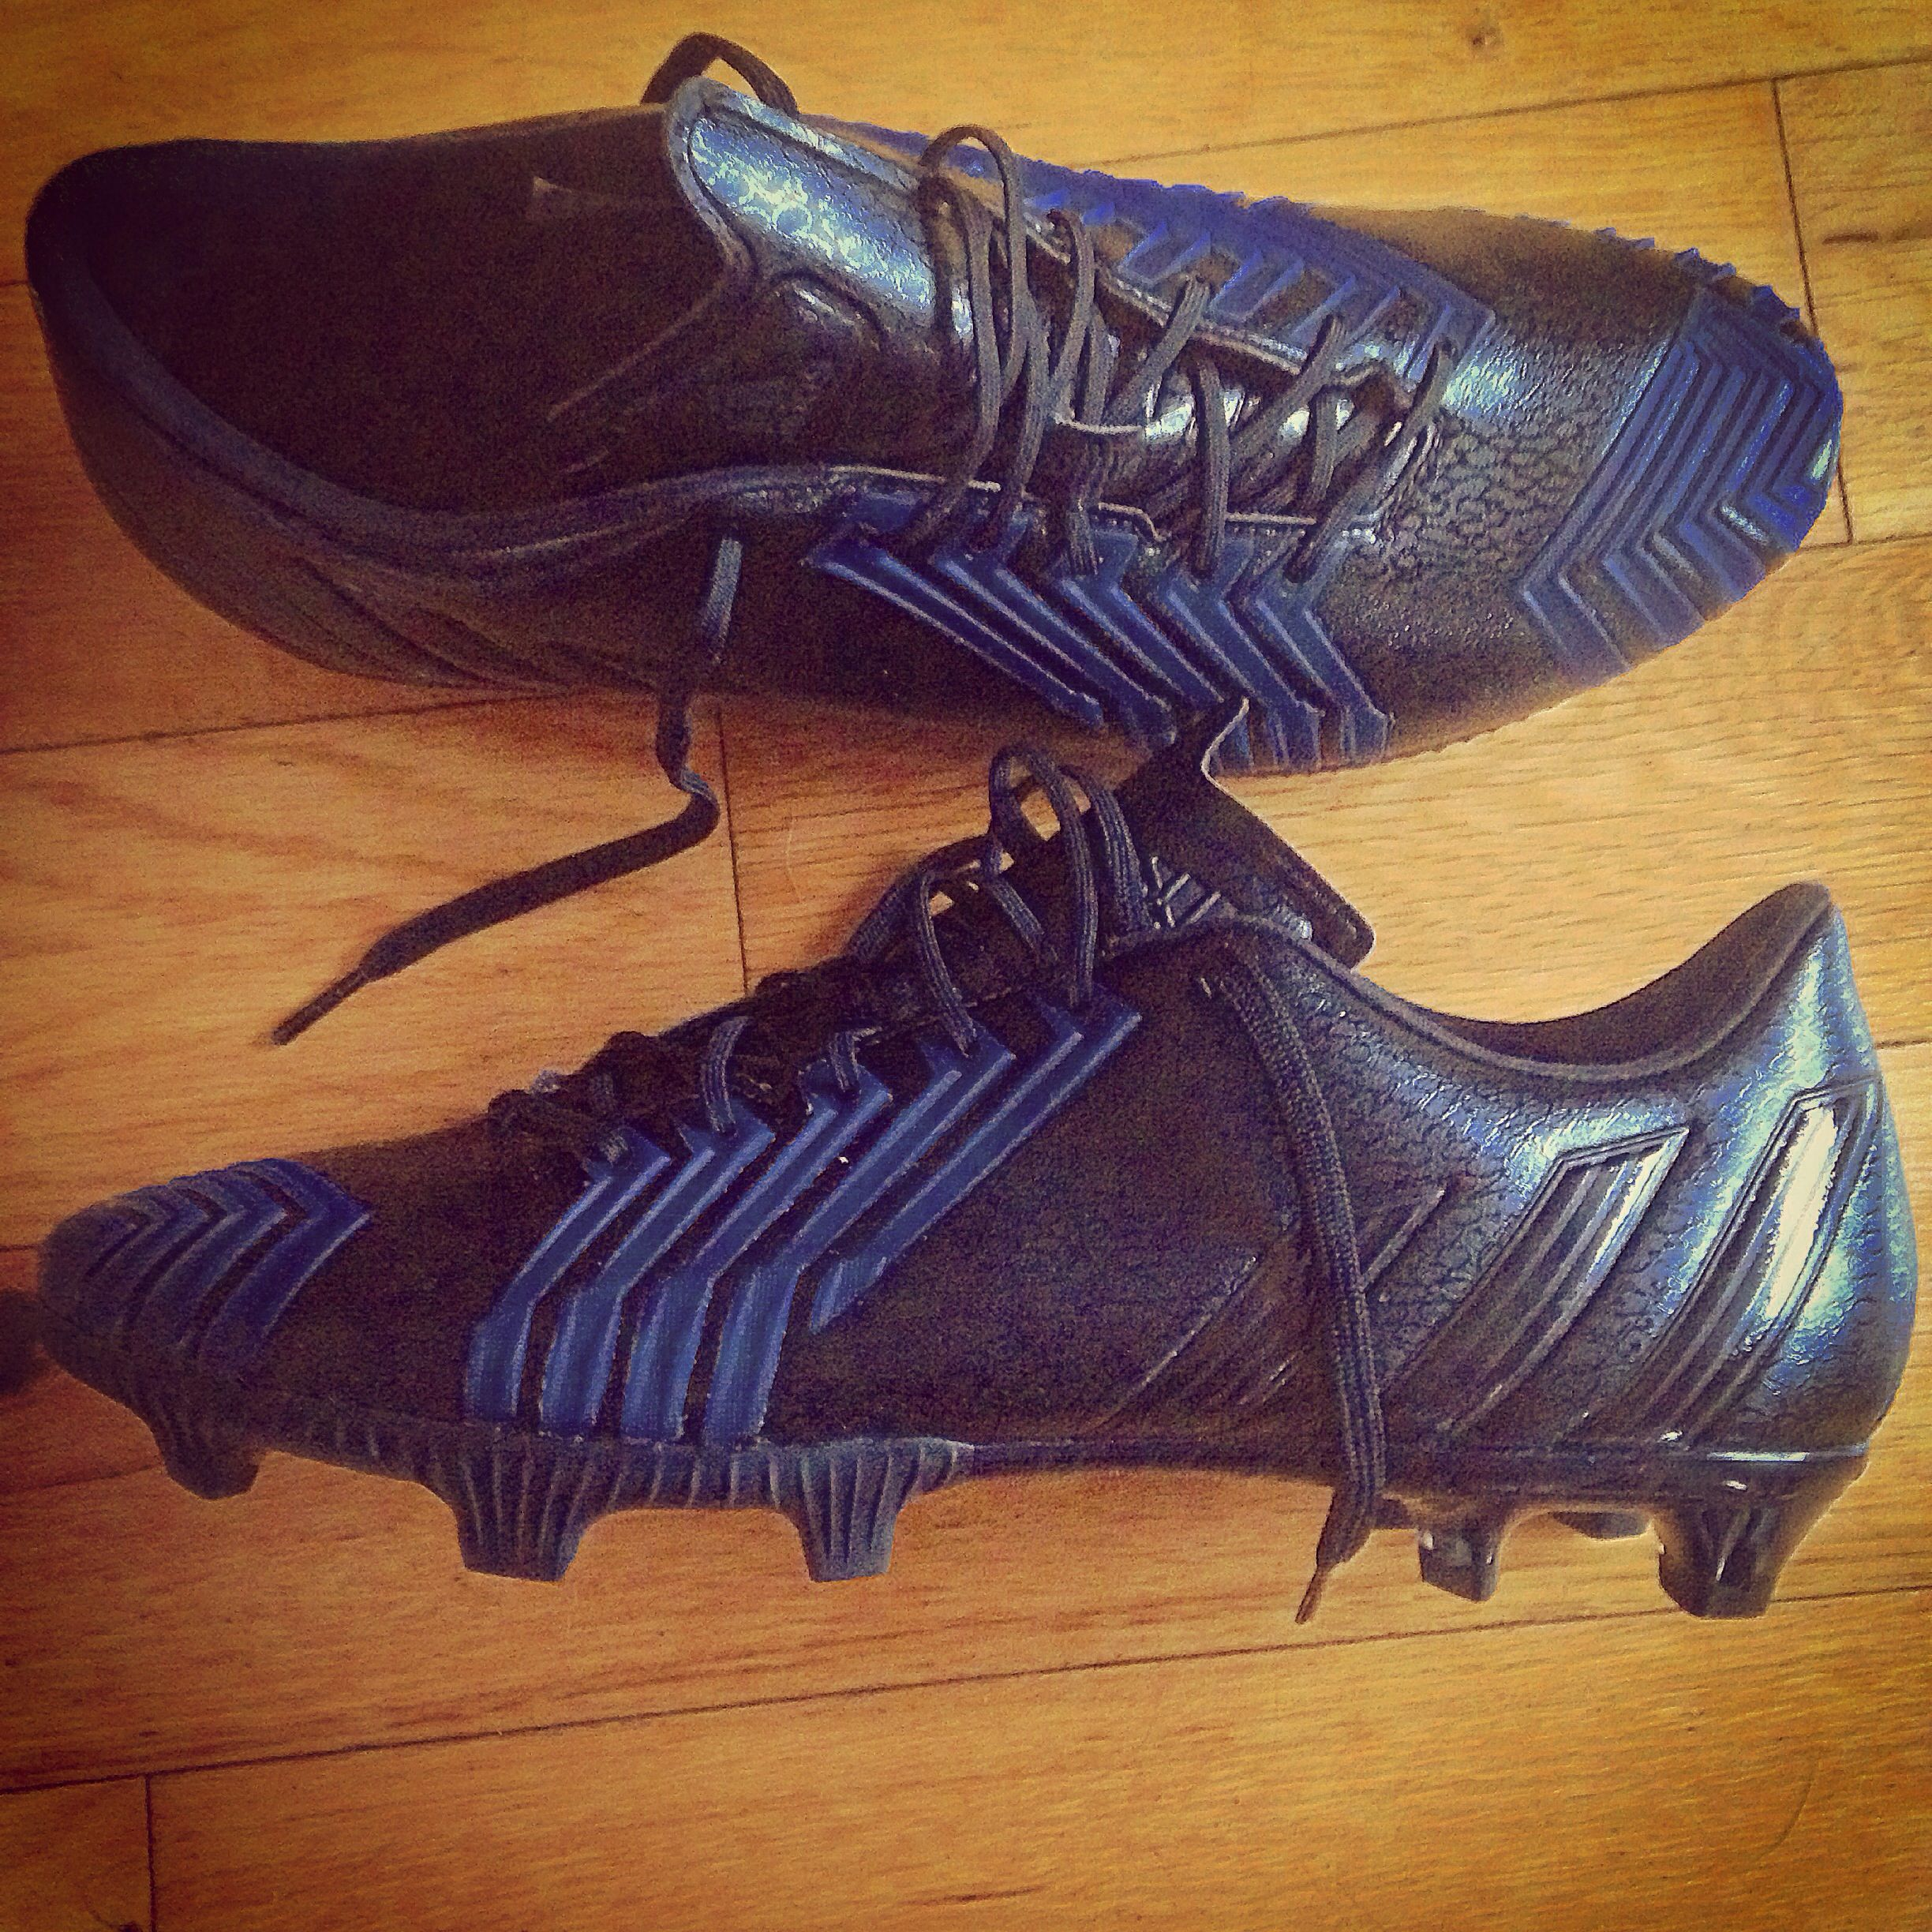 0f112cab1 My new football boots! Blackouts are just too cool! | Sport ...